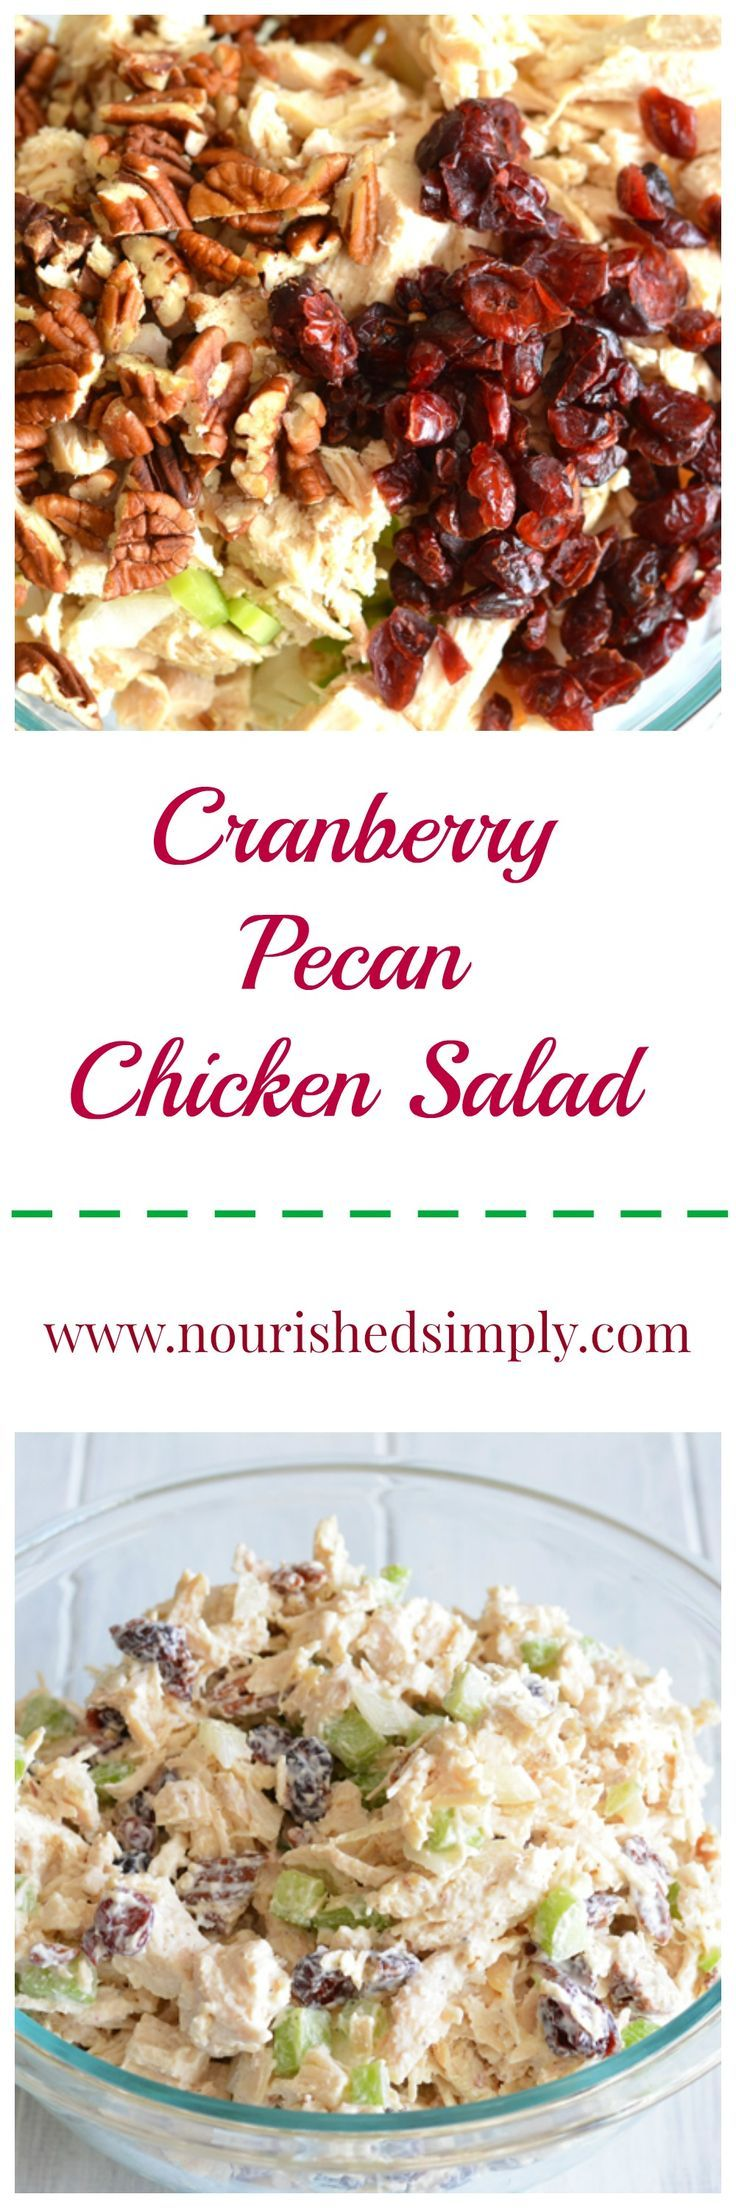 Do you need a recipe for a holiday lunch time celebration?  This festive cranberry pecan chicken salad has the flavors and colors of the season.  Plus it is a simple recipe.